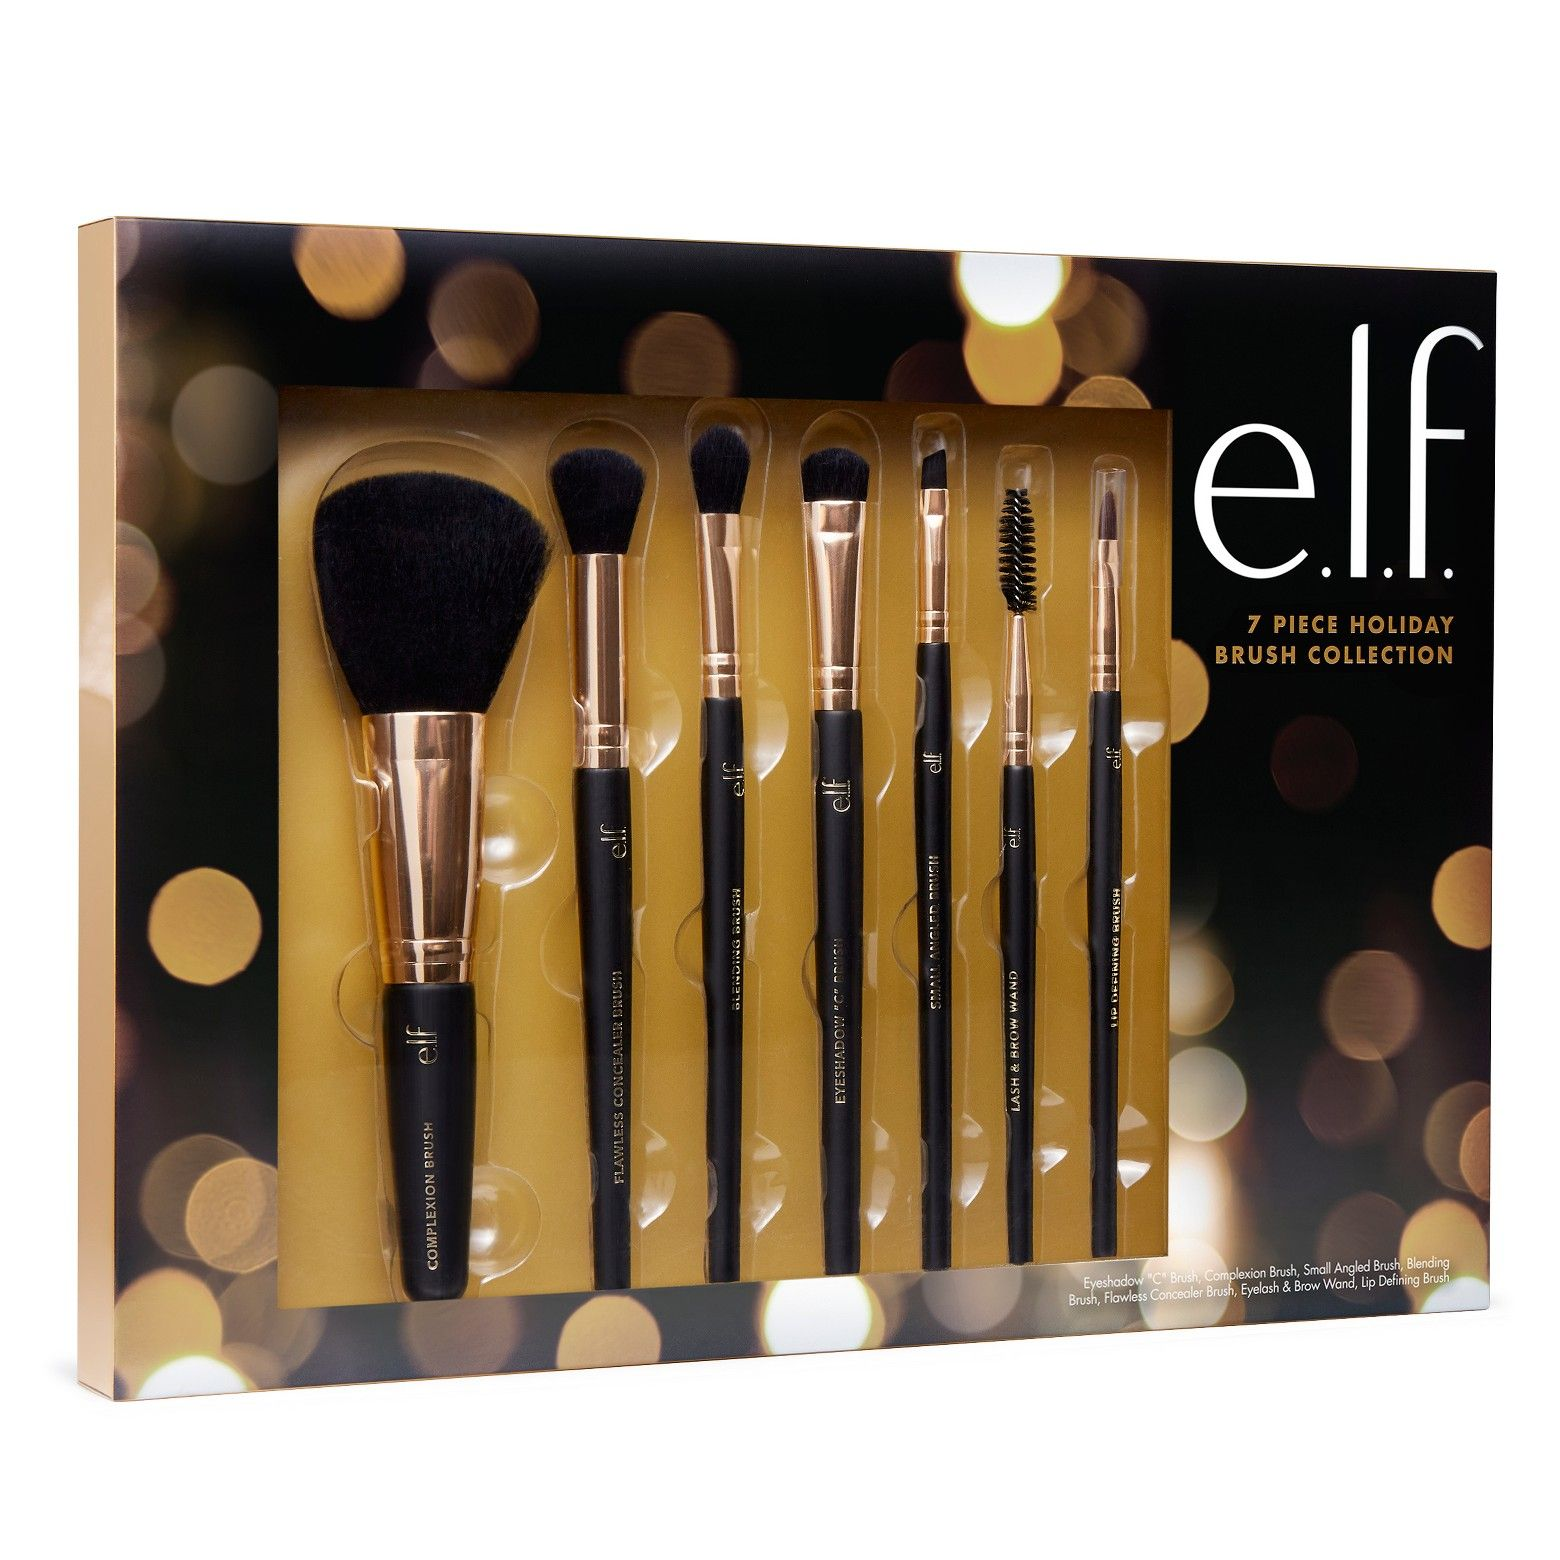 e.l.f.'s 7 piece Holiday Brush Collection Includes